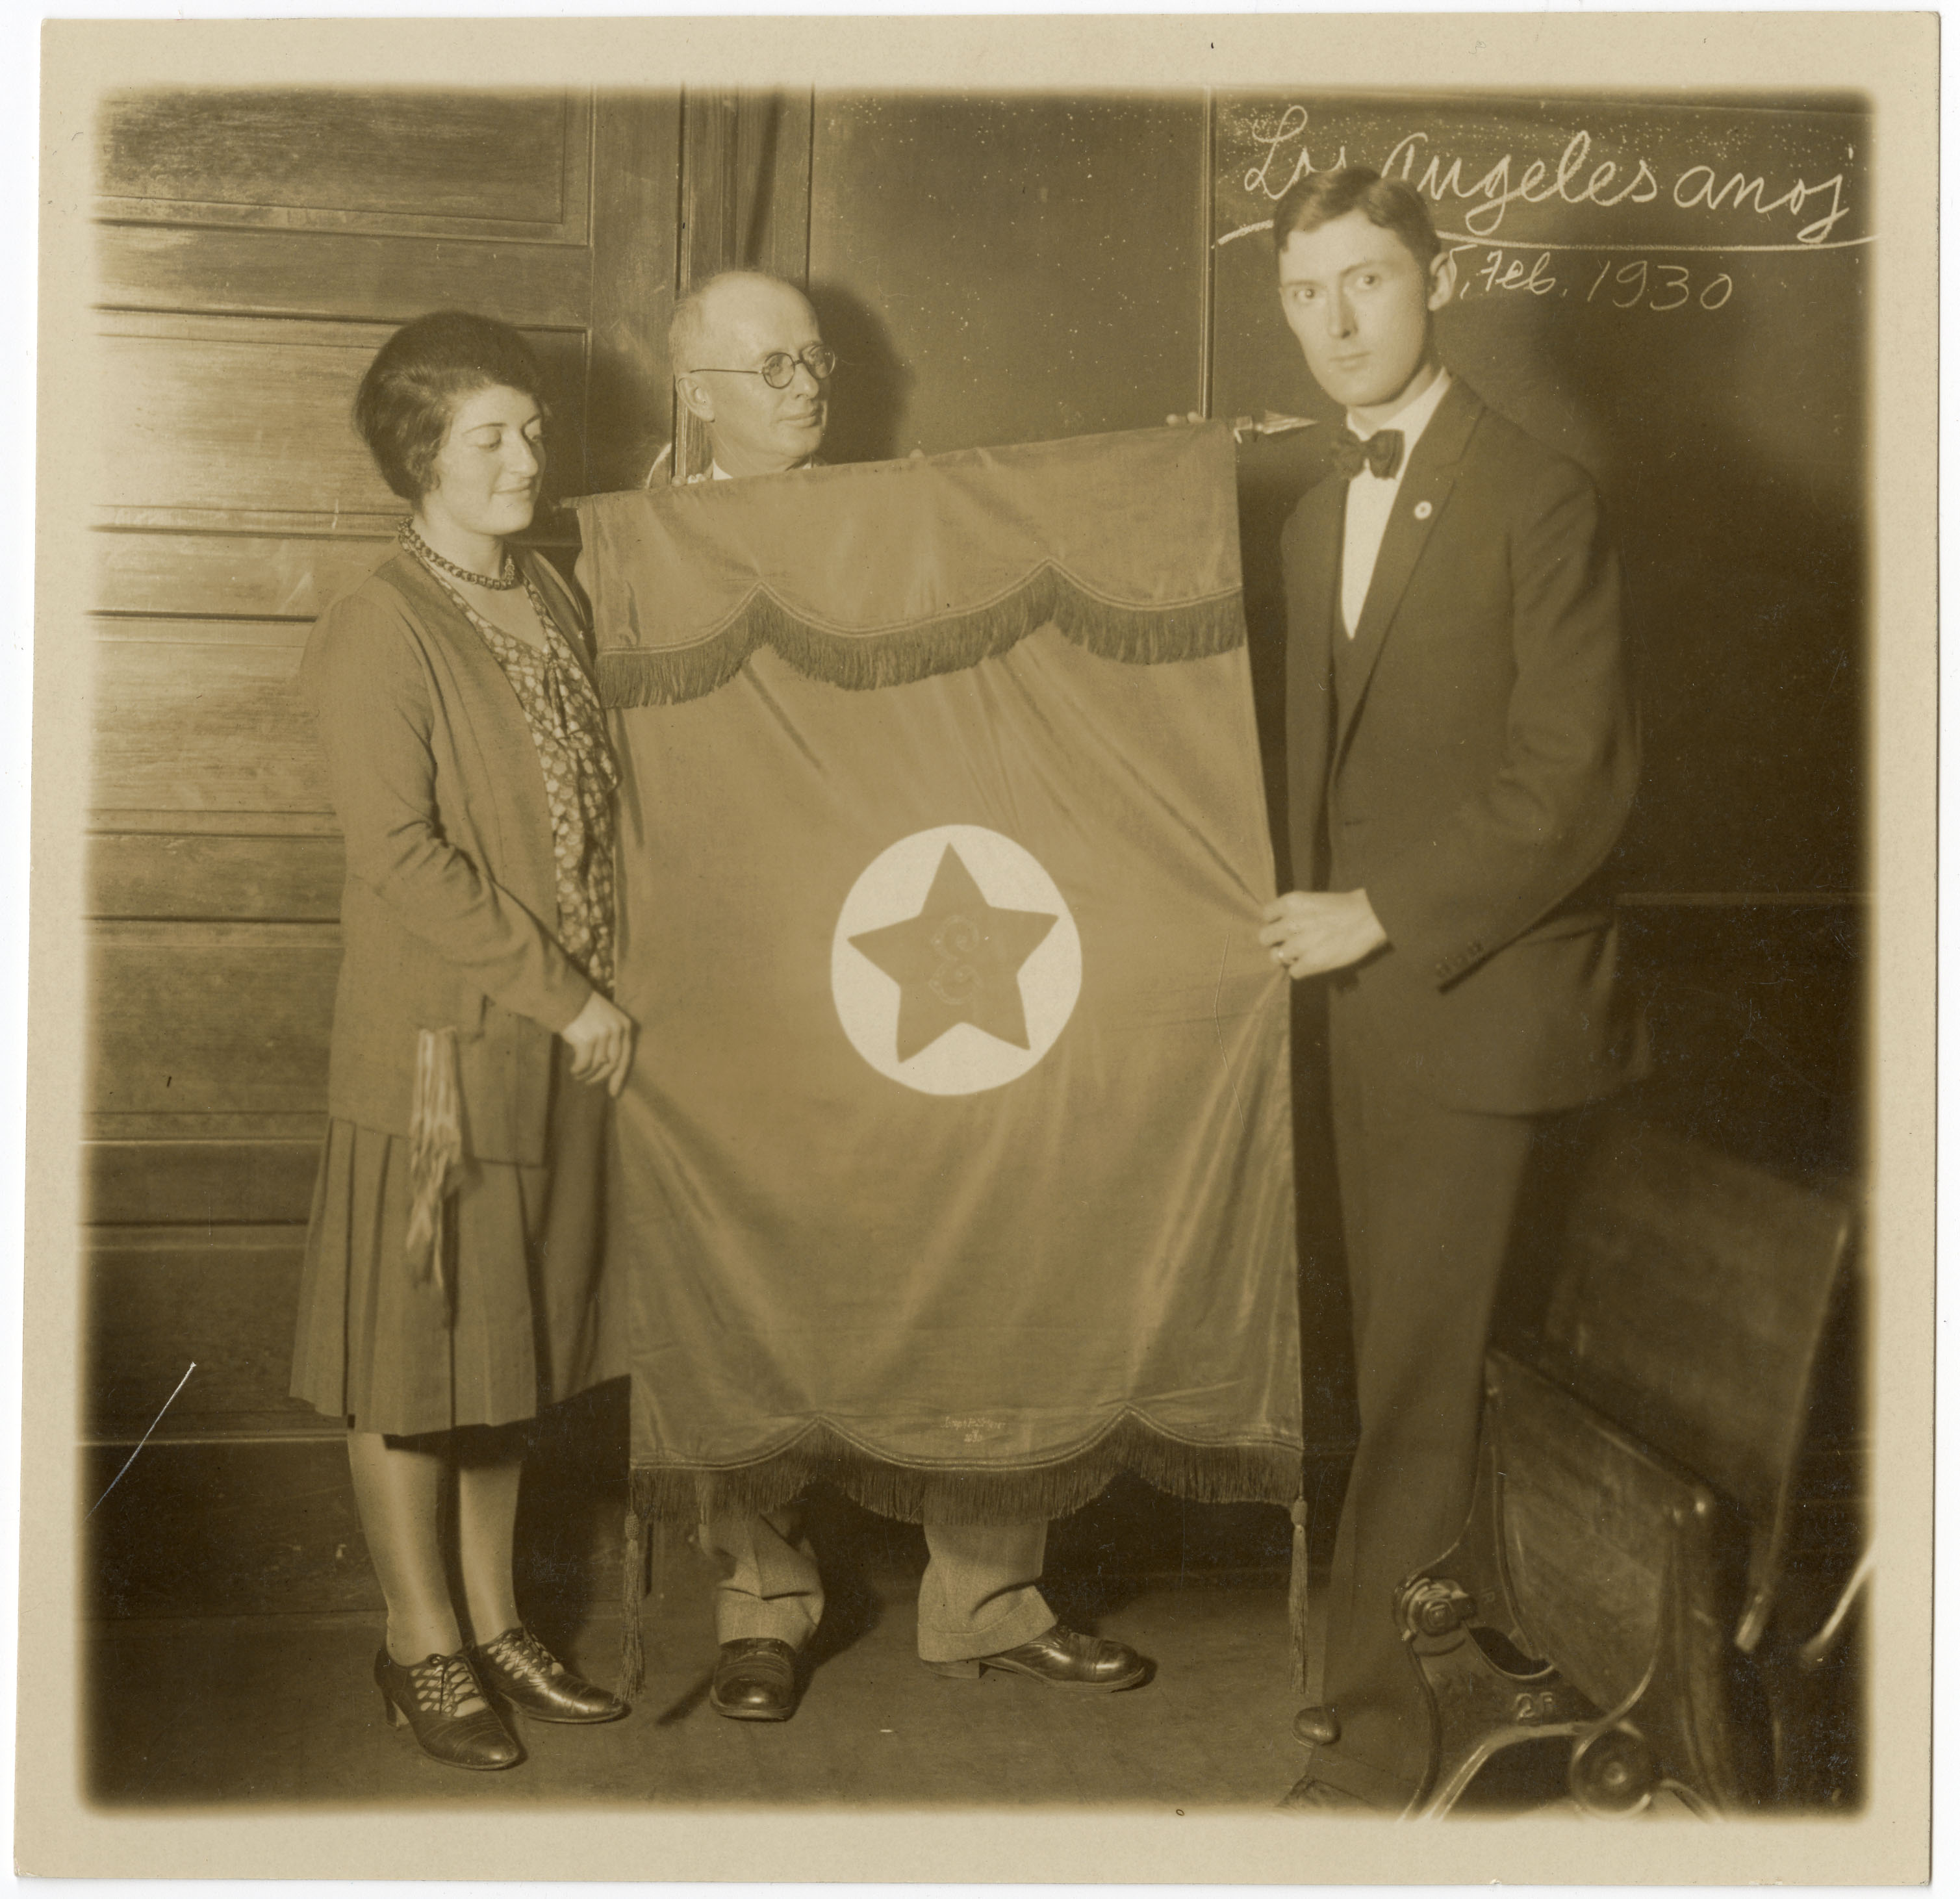 Joseph Scherer with two others holding an Esperanto flag